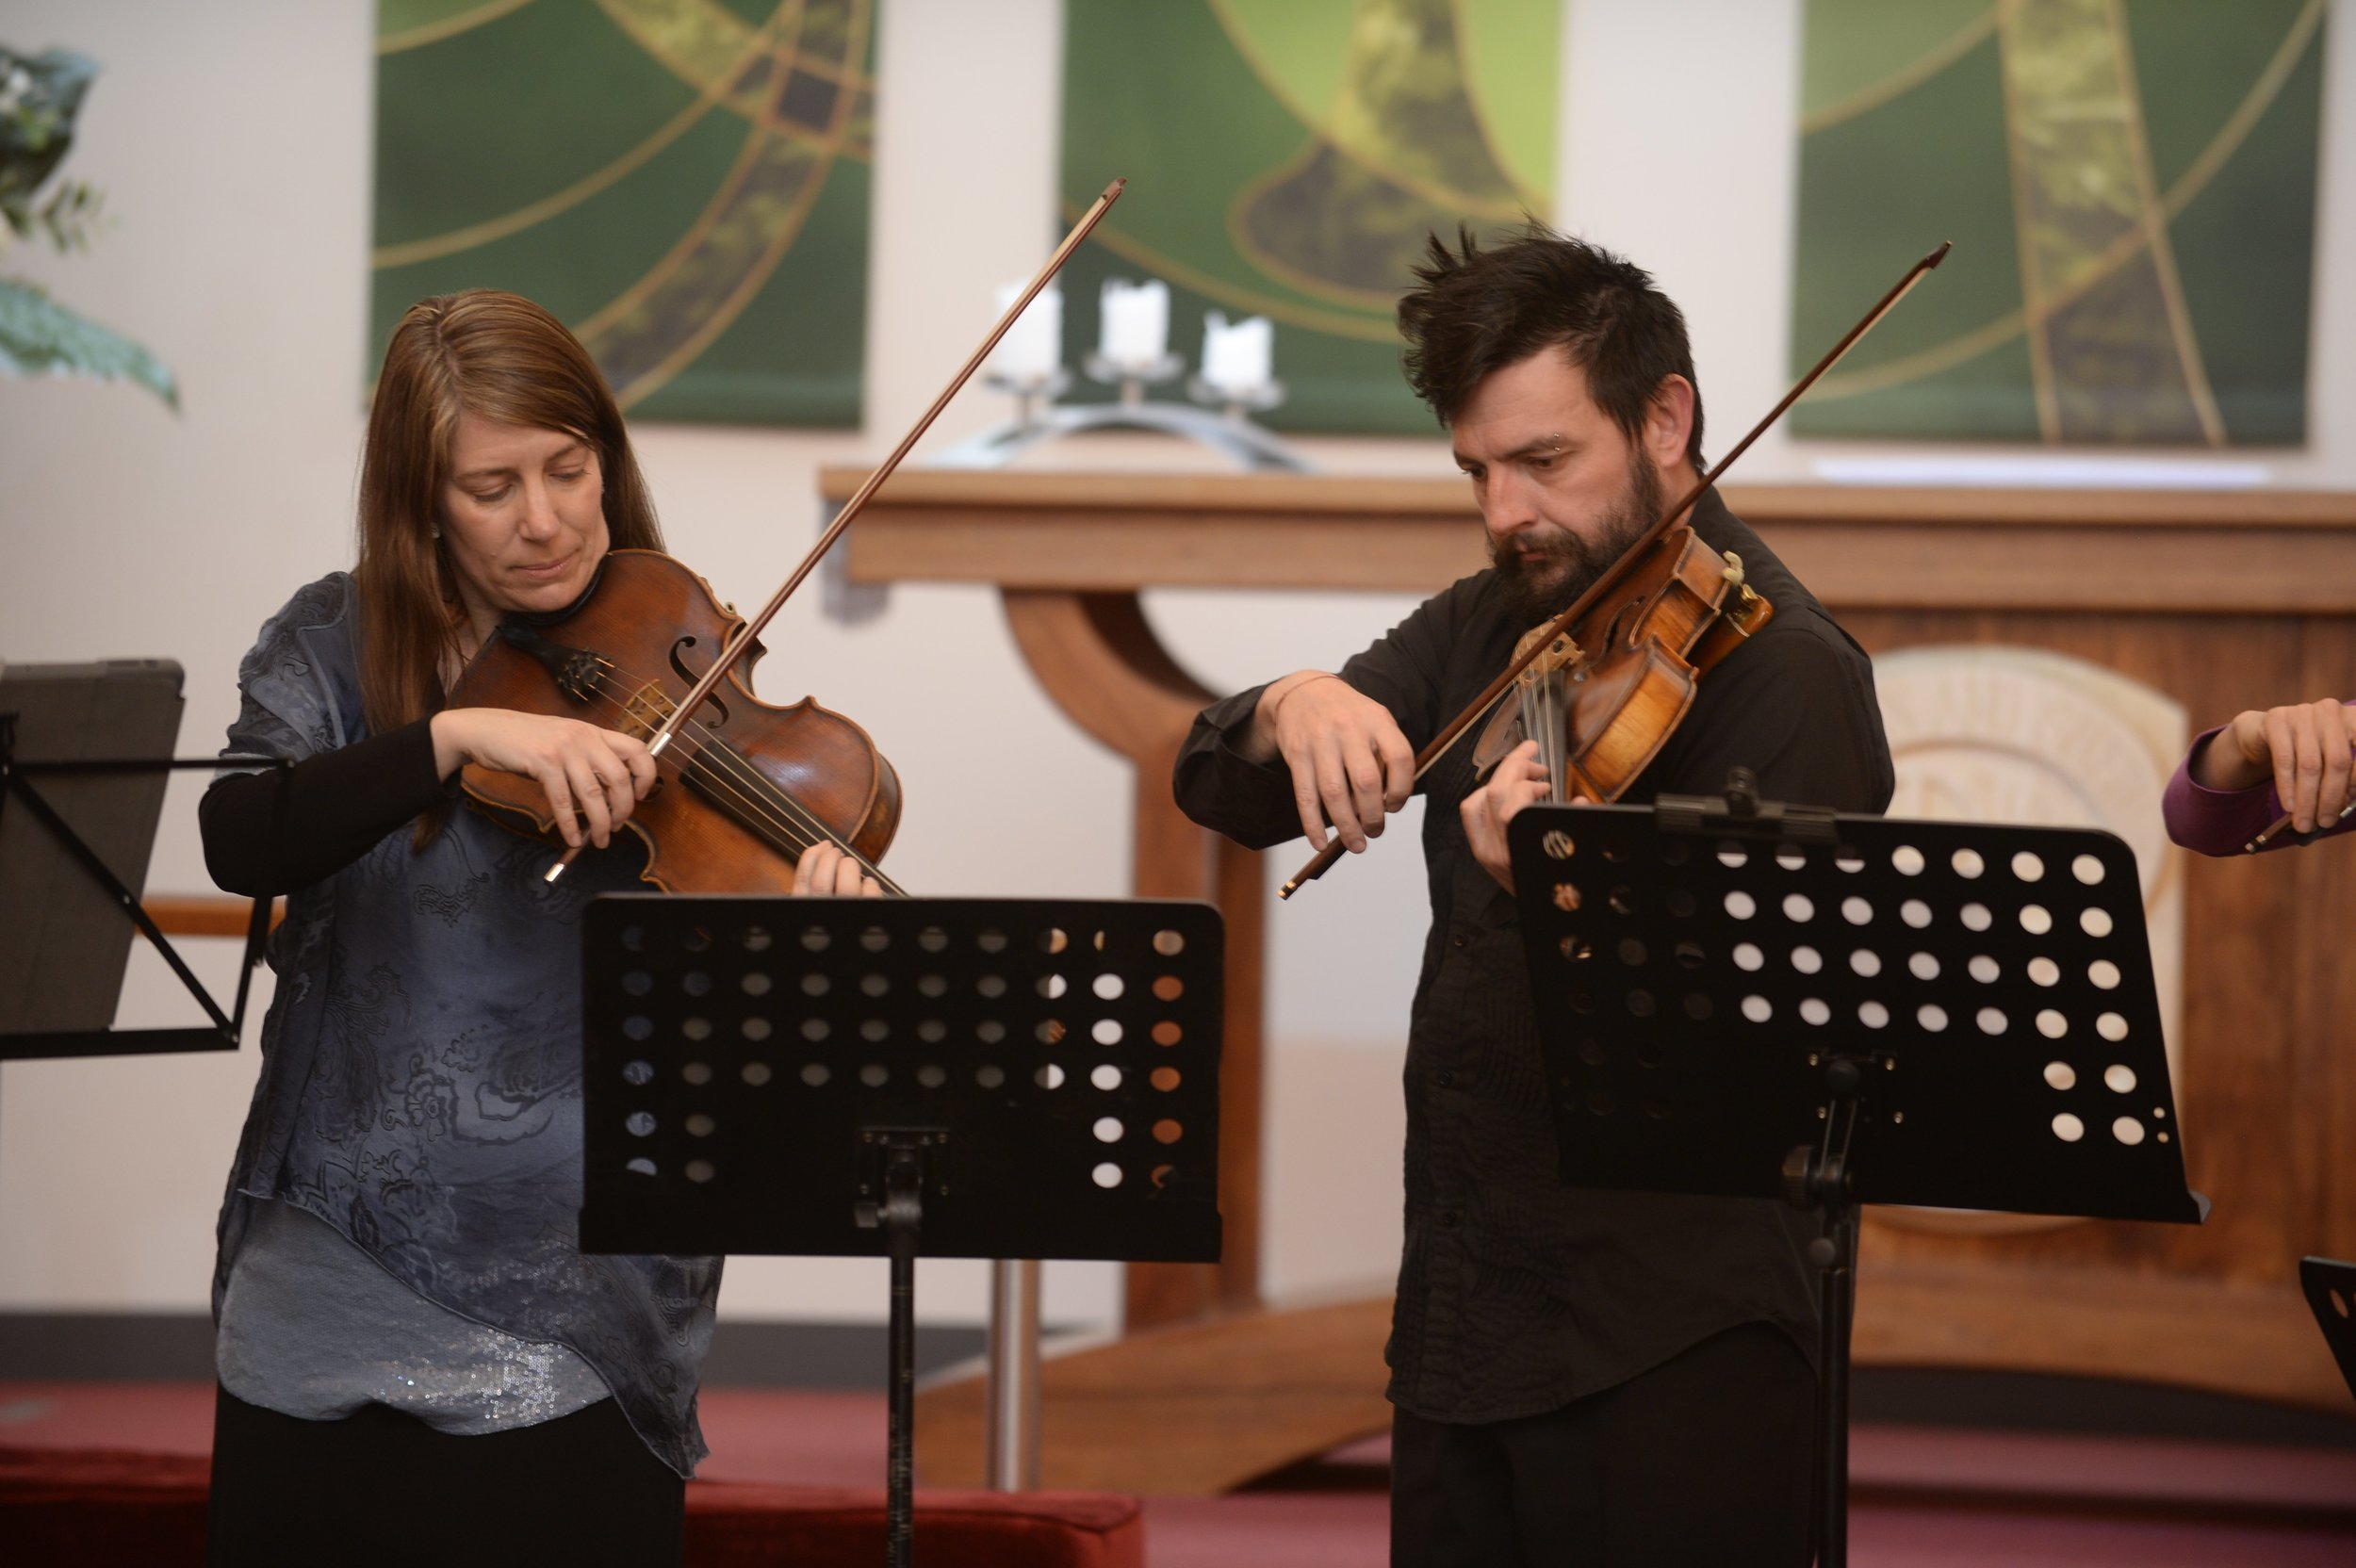 Helen and Chris Moore (guest viola) in Shepparton for JNQP mentoring and performance